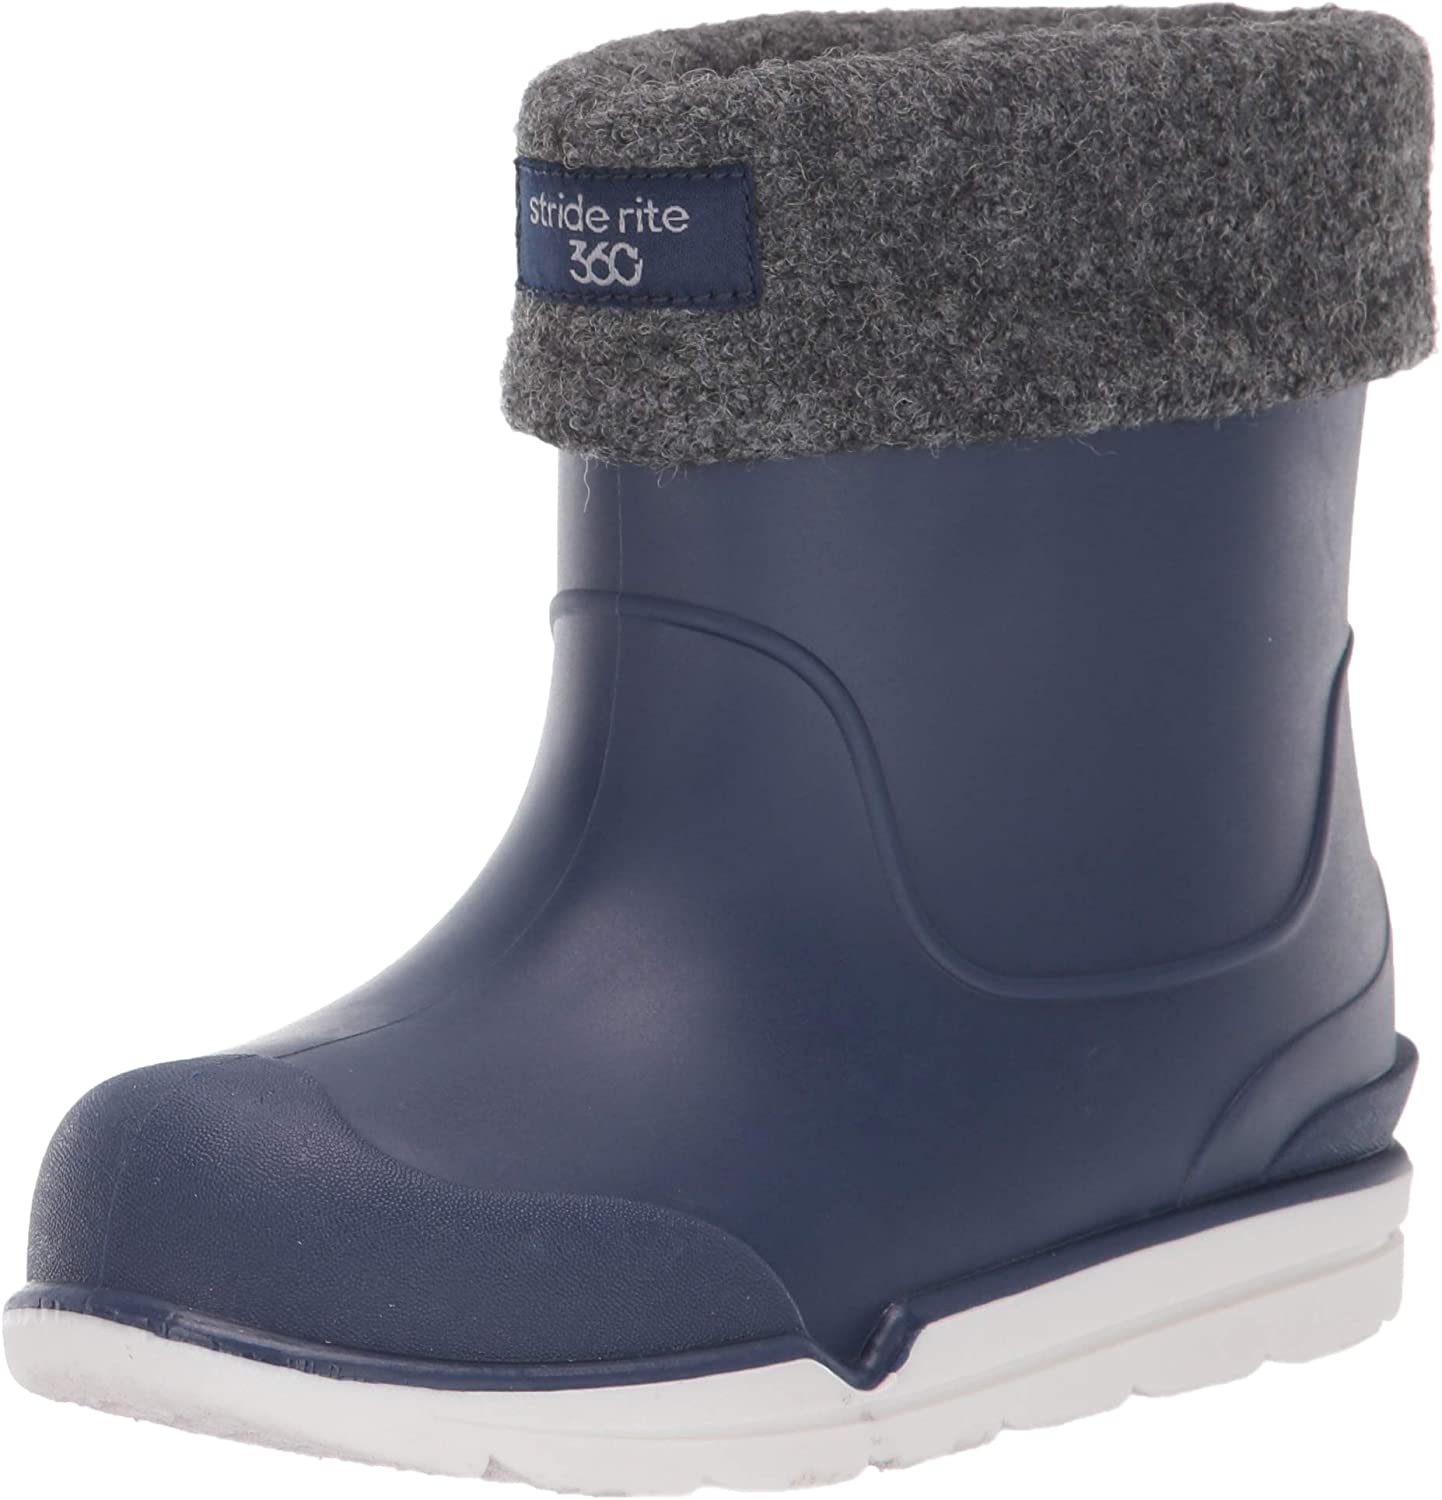 Stride Limited price Rite 360 Unisex-Child Bellamy All-Purpose Washab Dual 2021new shipping free Fit